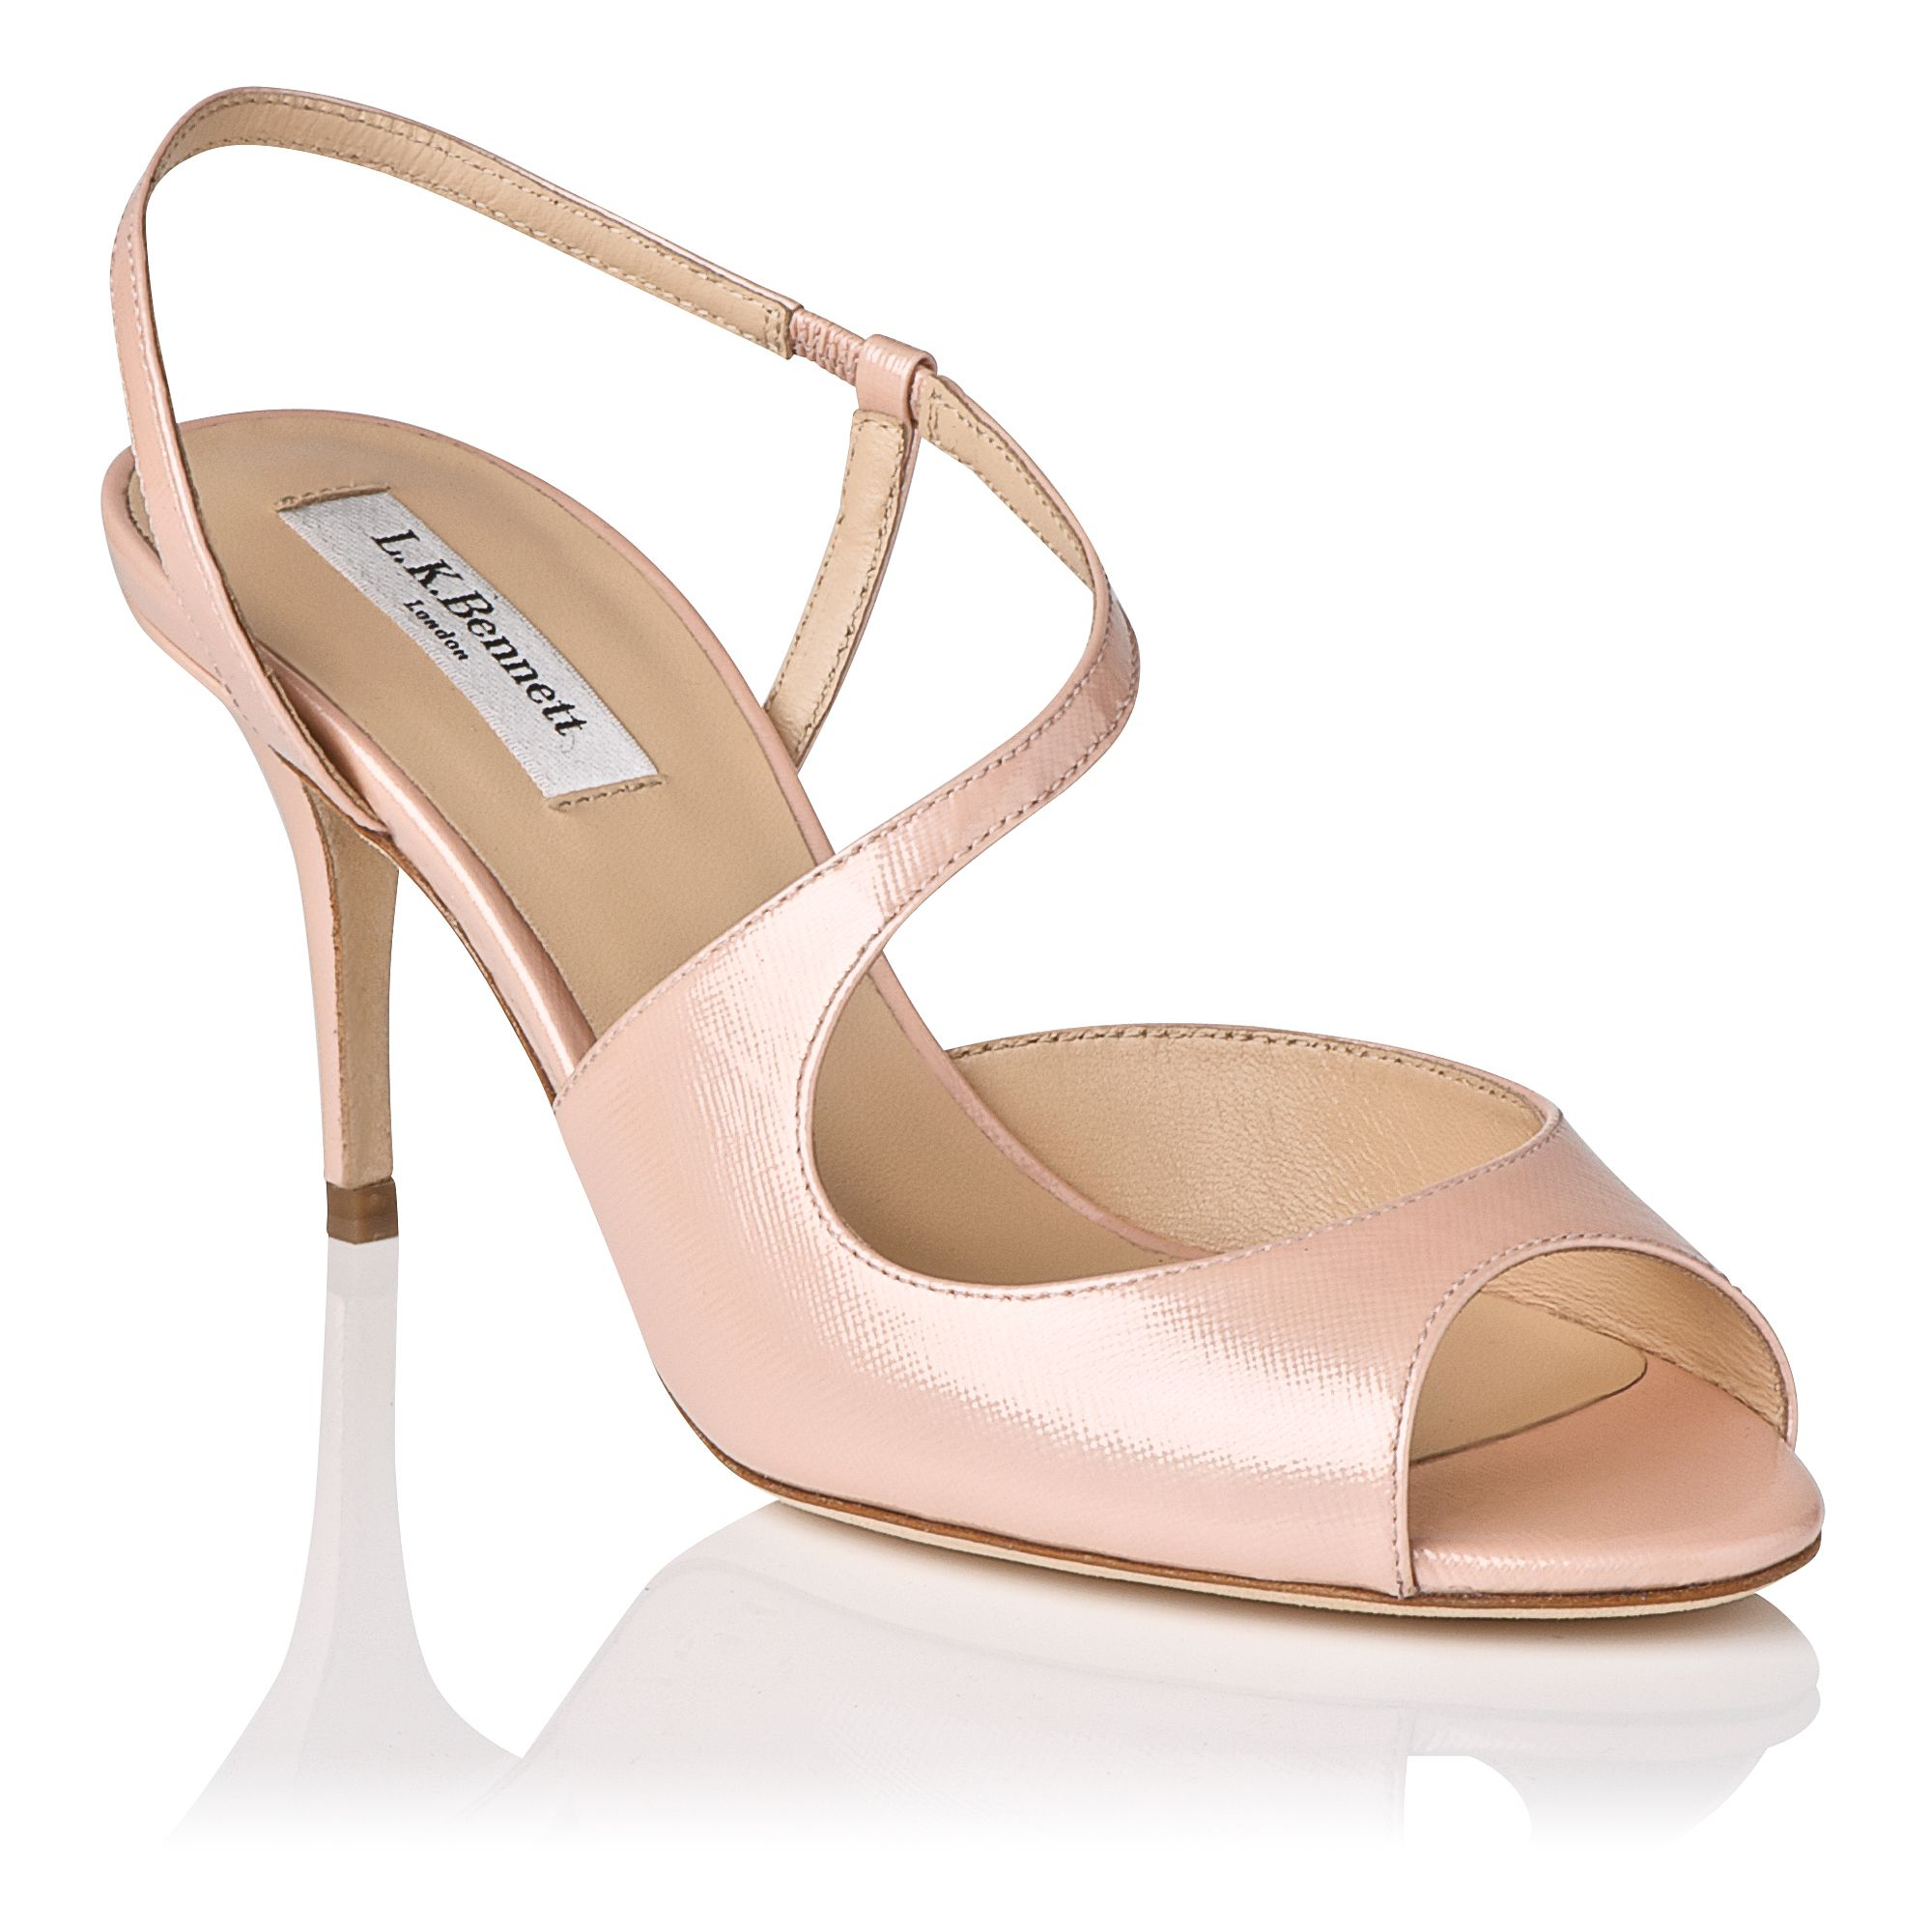 Palmita leather stilletto sandals